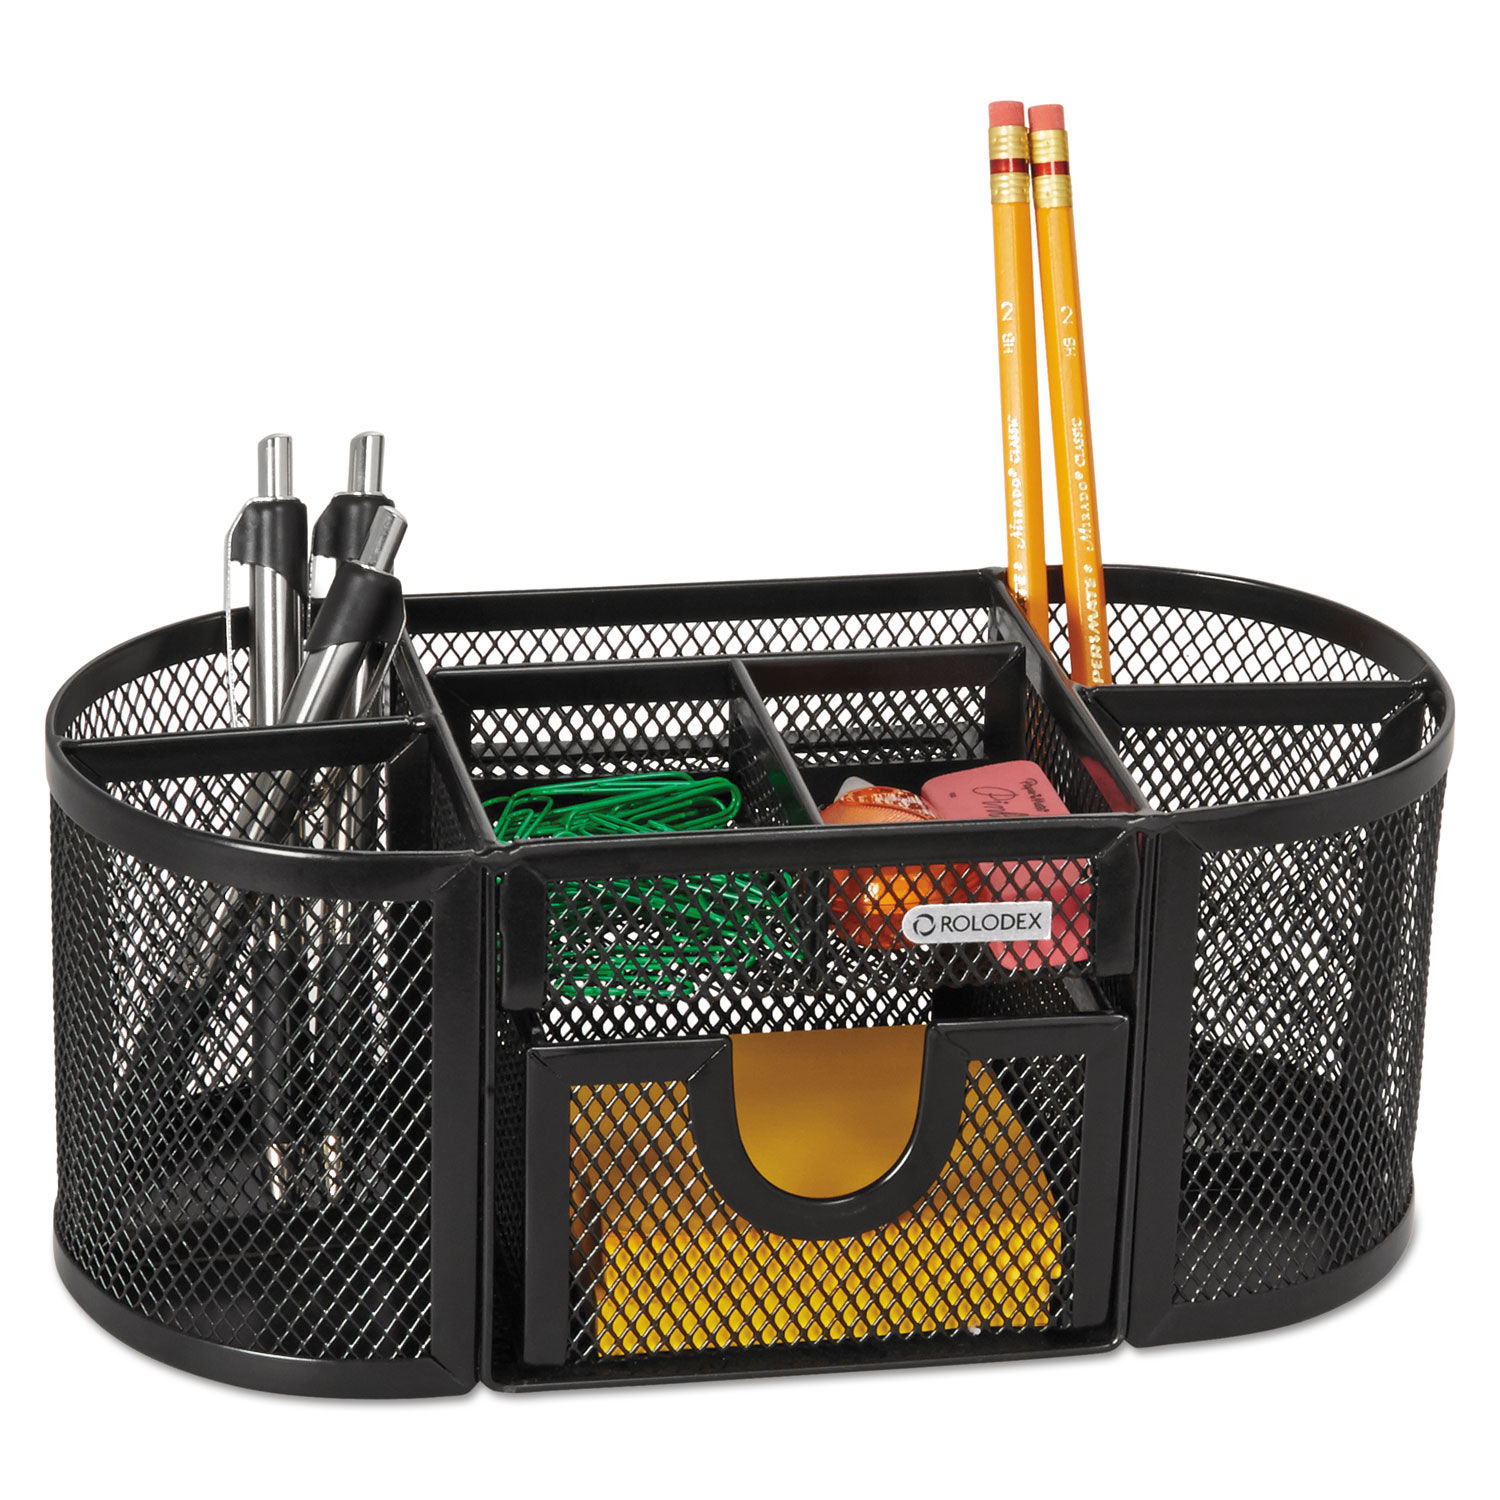 Mesh Pencil Cup Organizer By Rolodex Rol1746466 Ontimesupplies Com